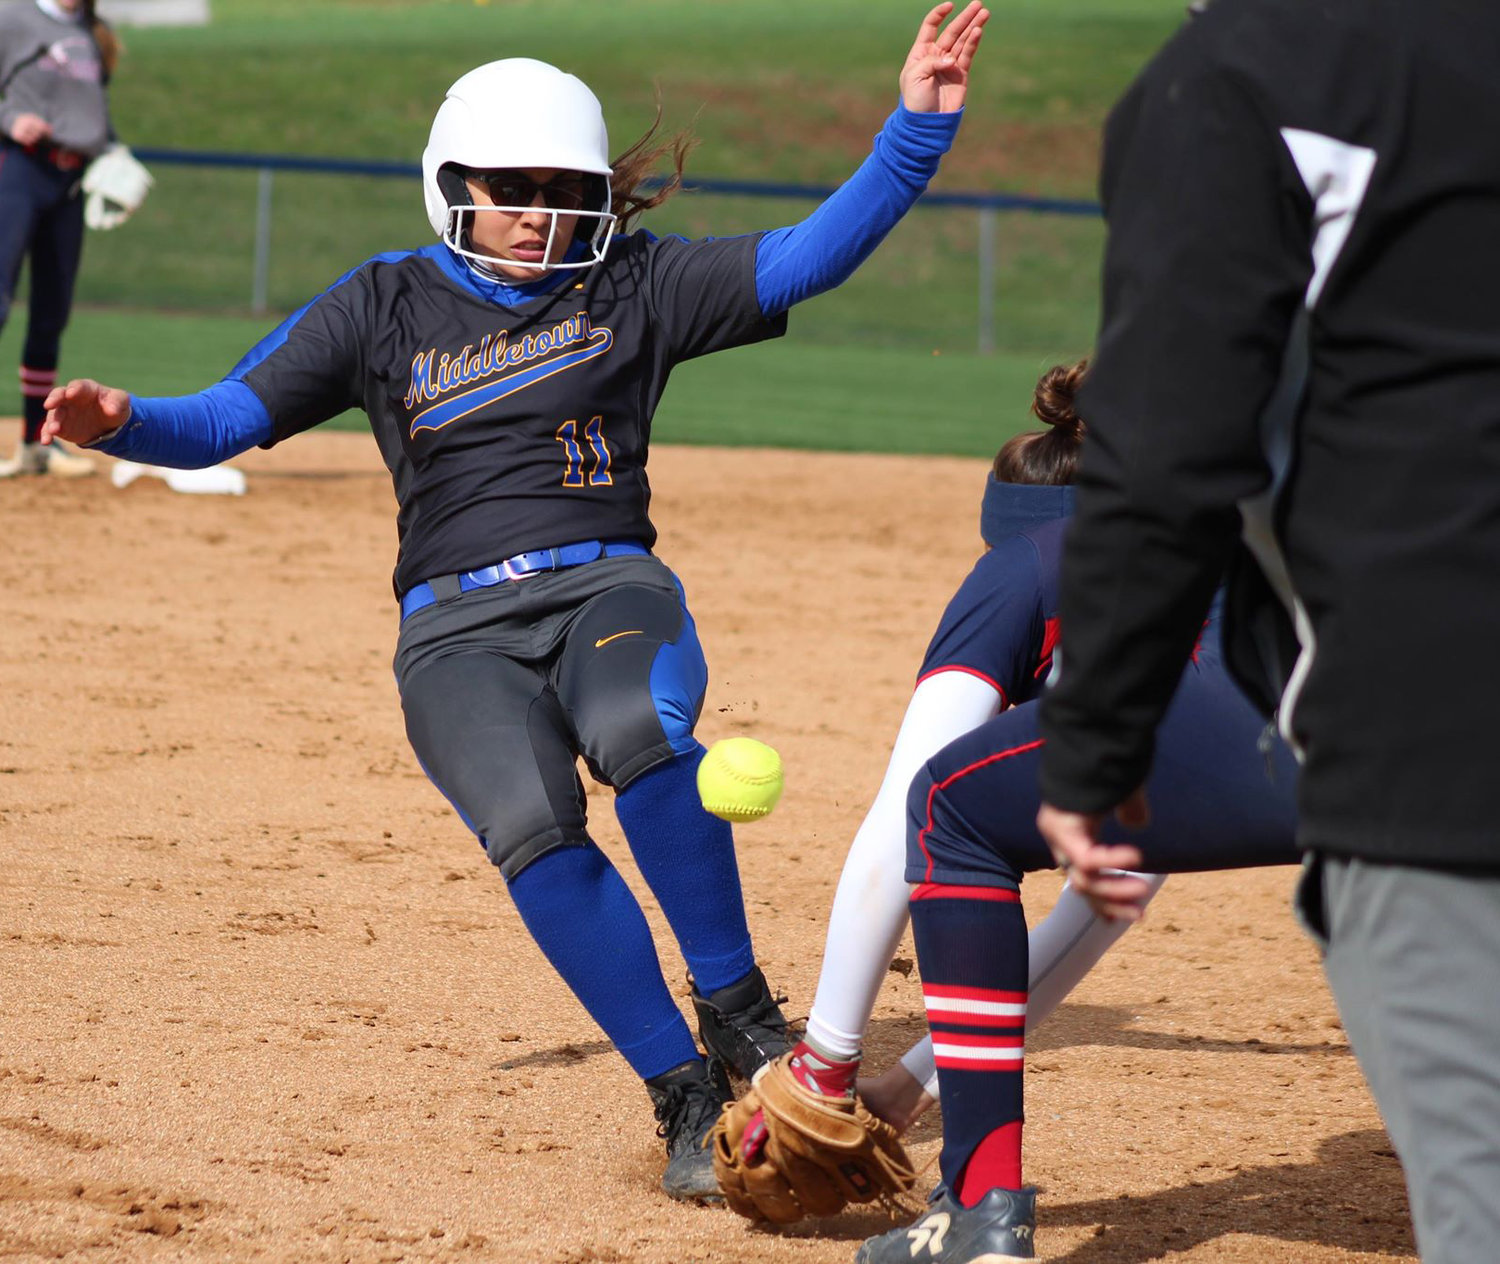 Camila Martinez slides into third during the April 15 home game against Red Land.